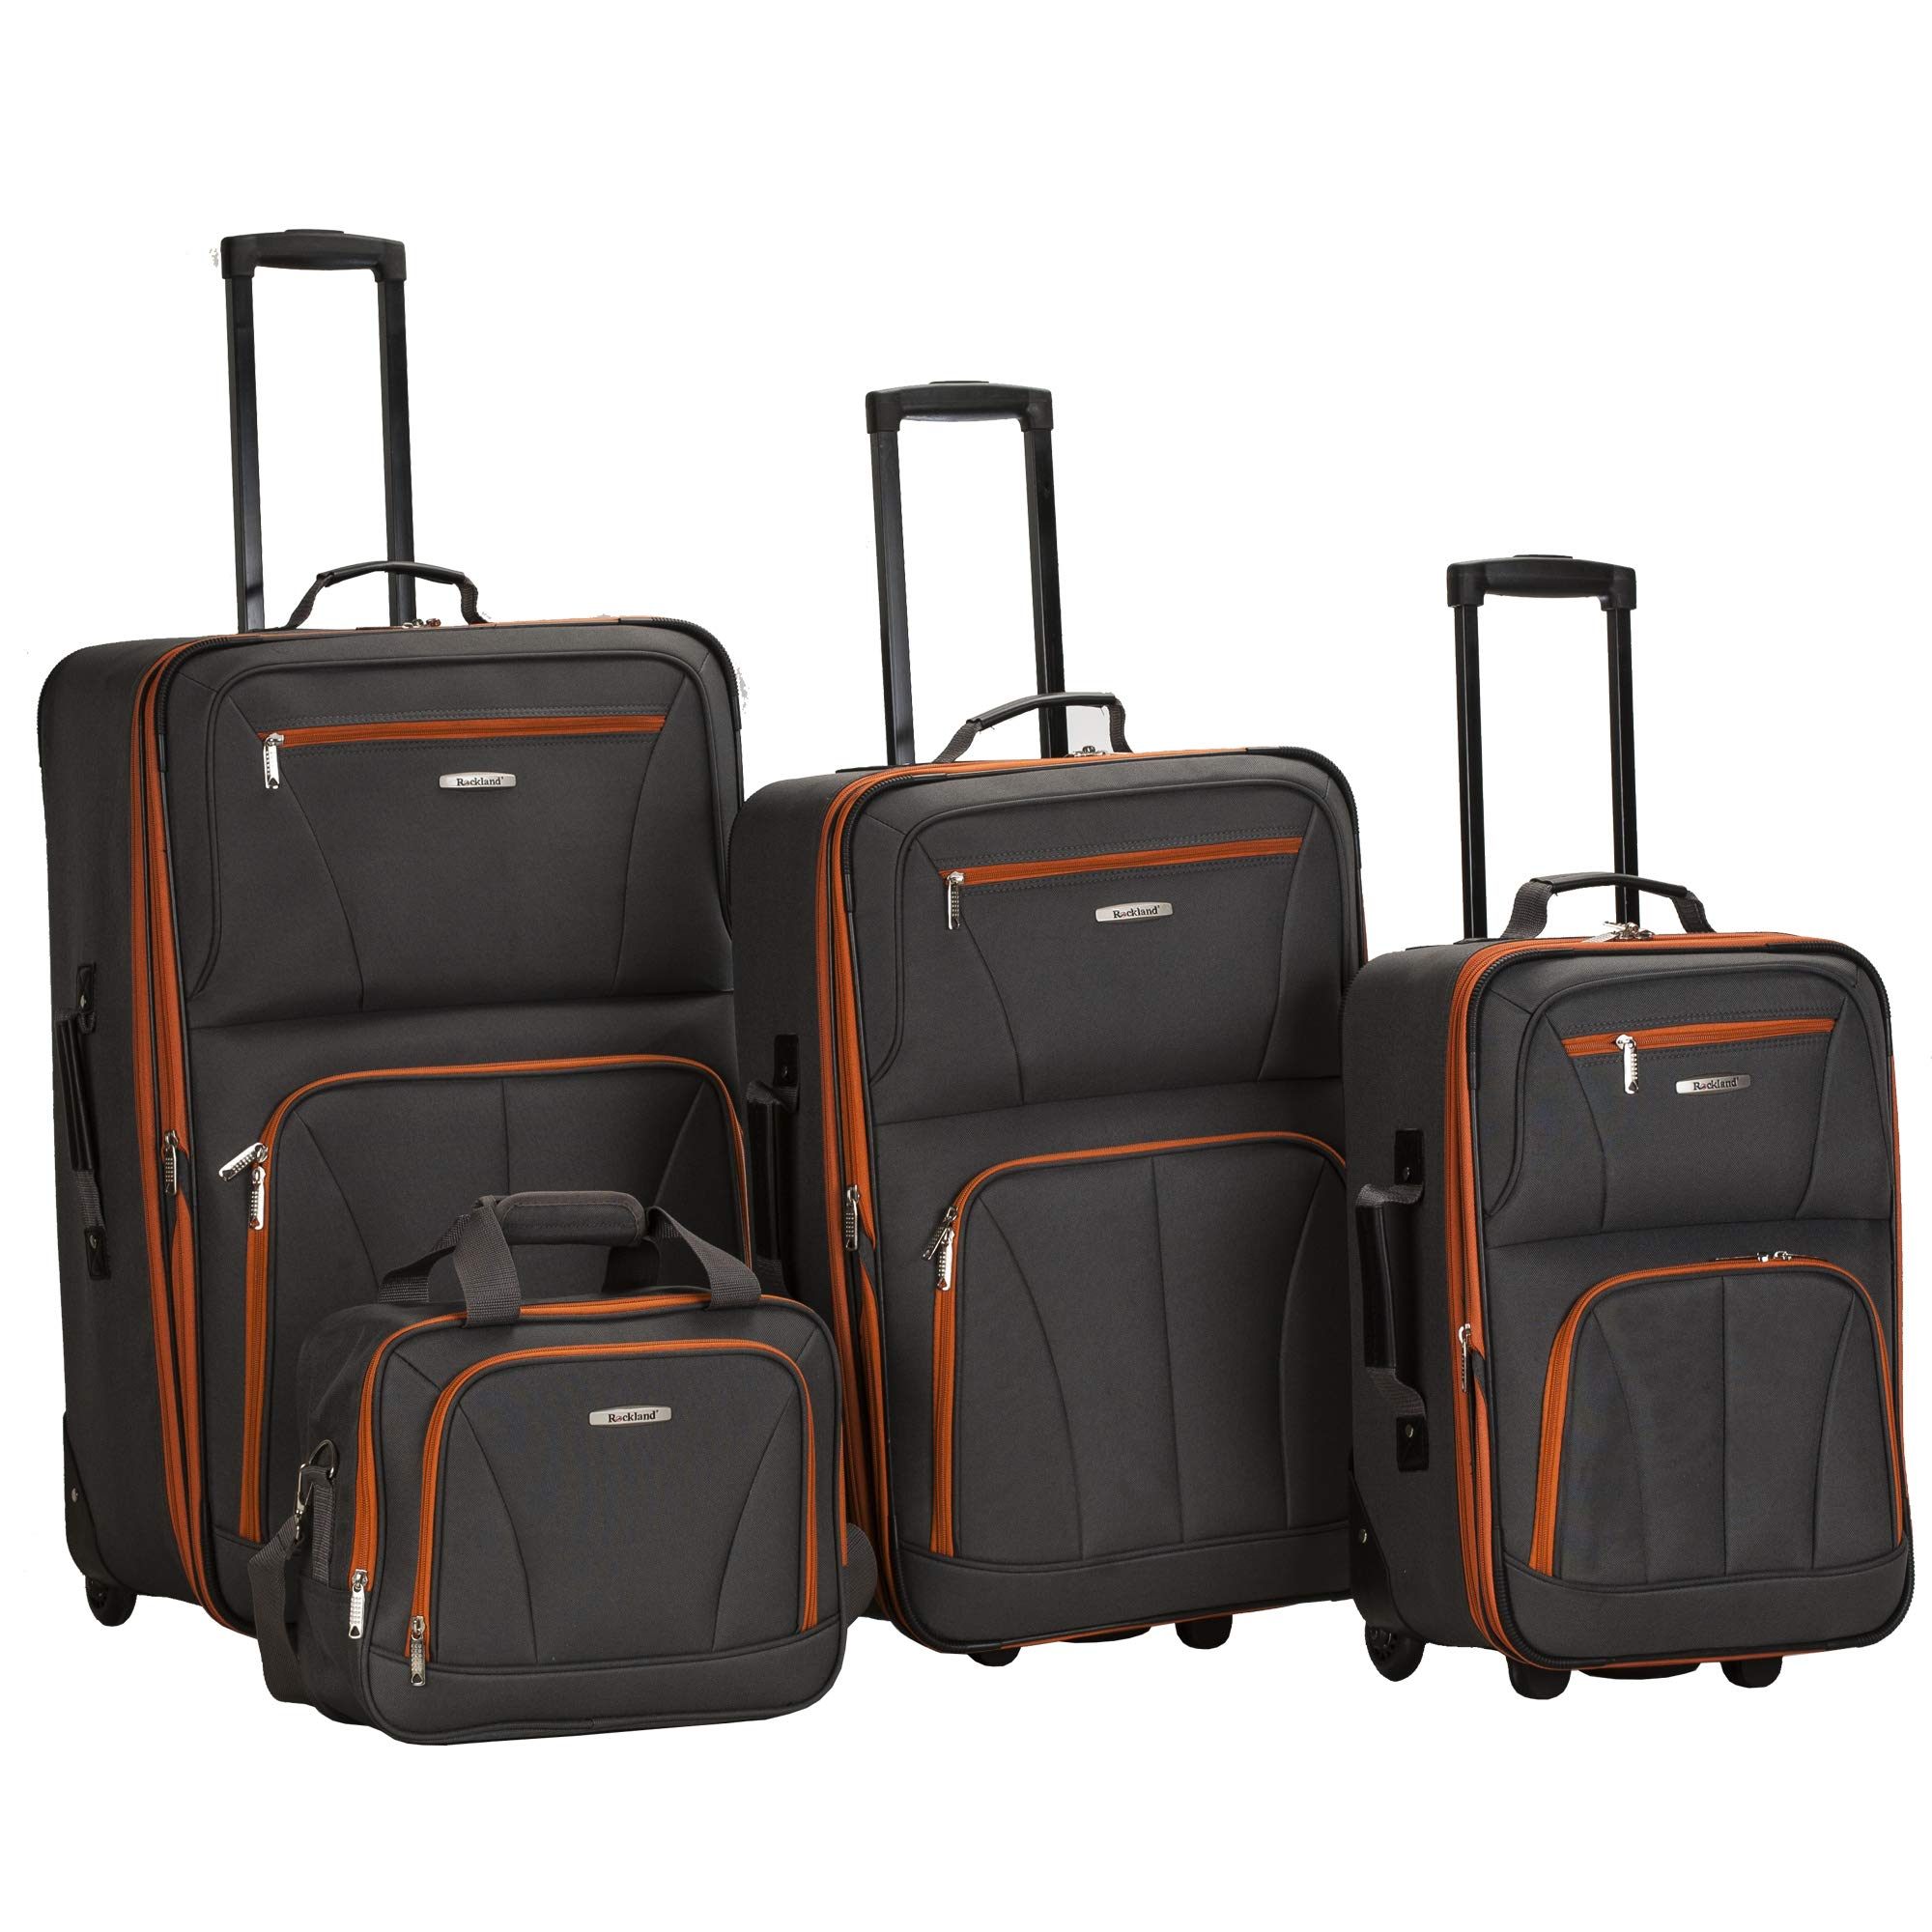 Rockland Luggage 4 Piece Set, Charcoal, One Size by Rockland